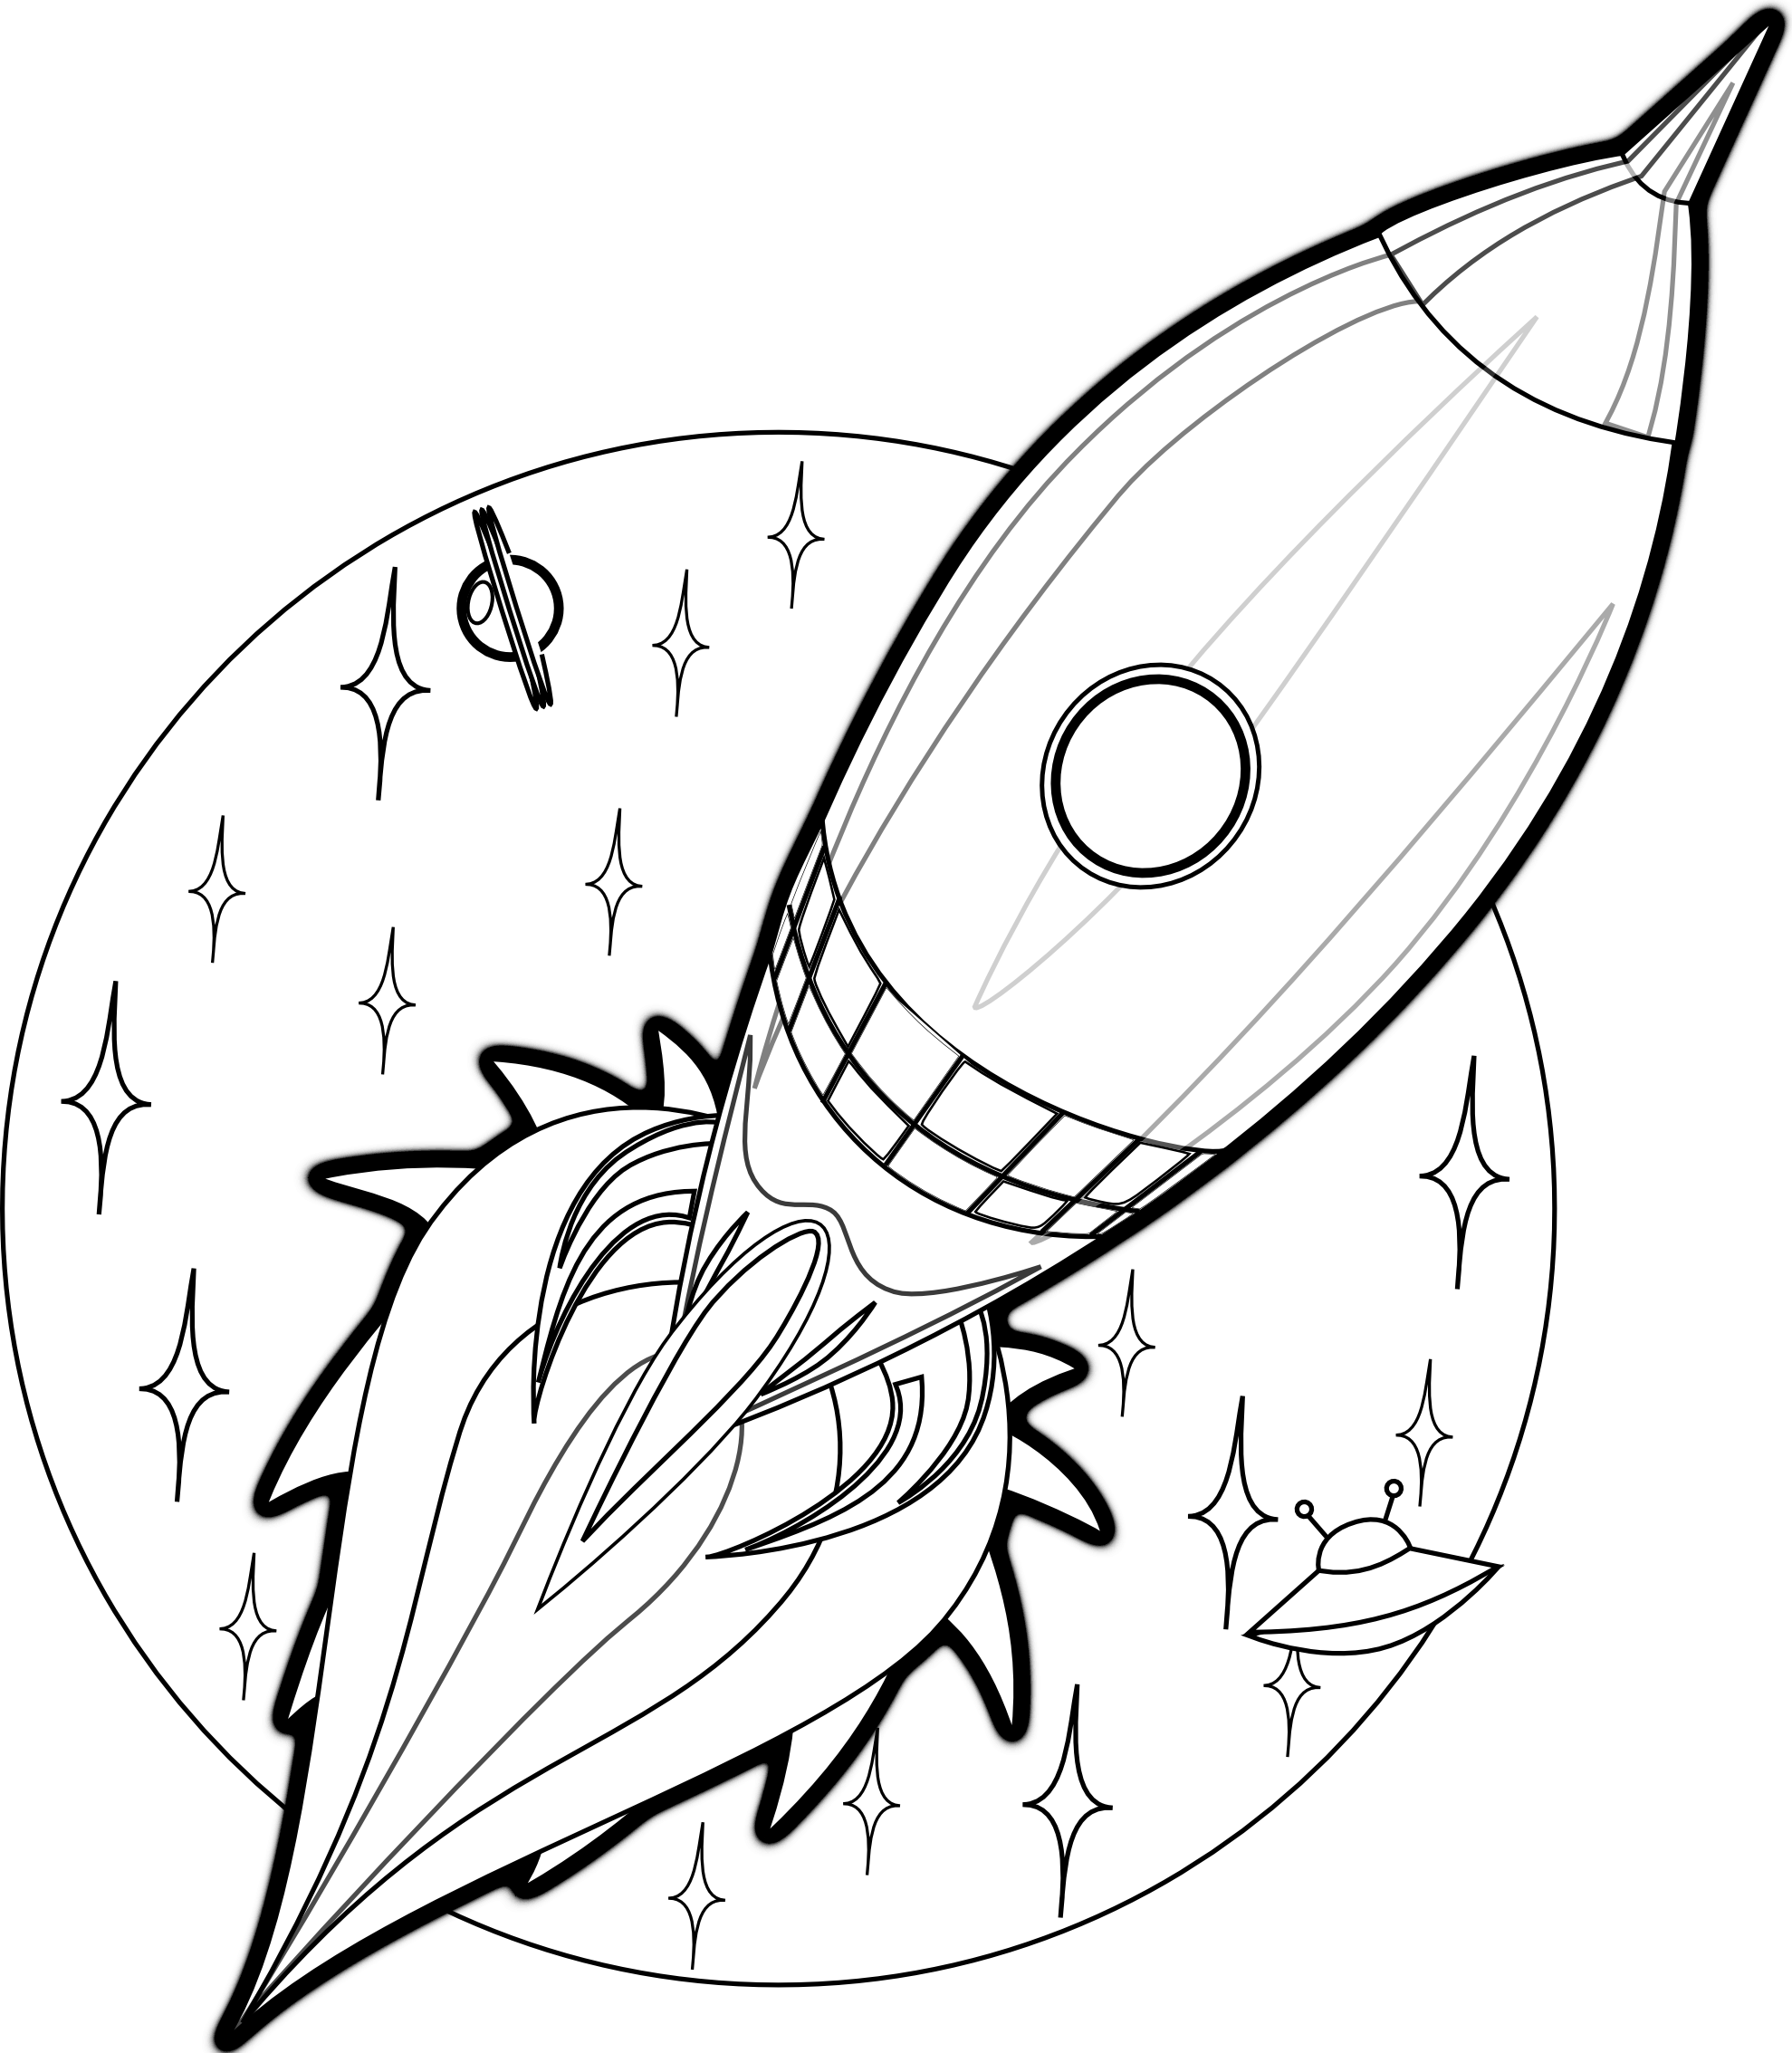 Free Printable Rocket Ship Coloring Pages For Kids Space Coloring Pages Printable Rocket Ship Fall Coloring Pages